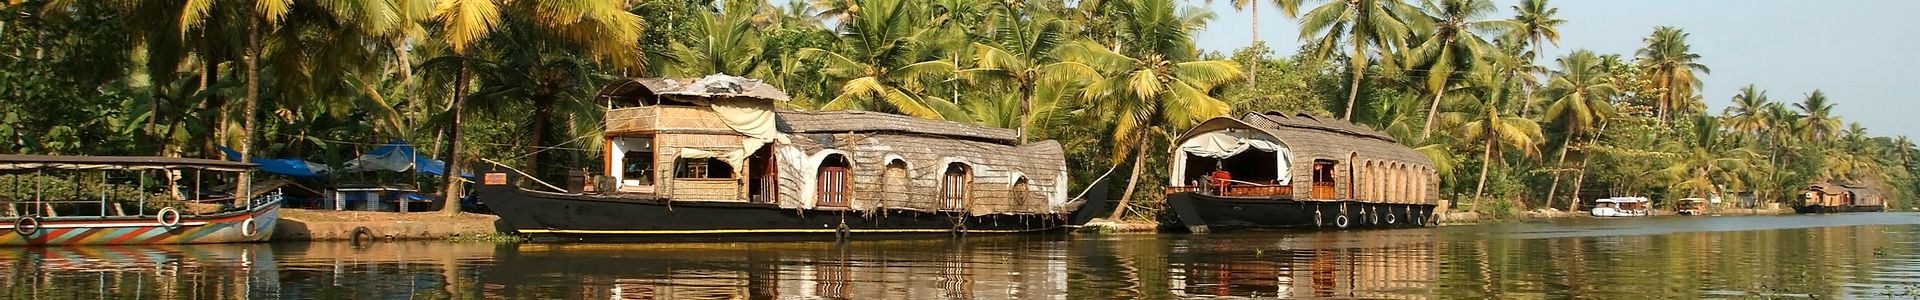 house-boat-in-the-kerala-india-backwaters-inde-thinkstockphotos.jpg